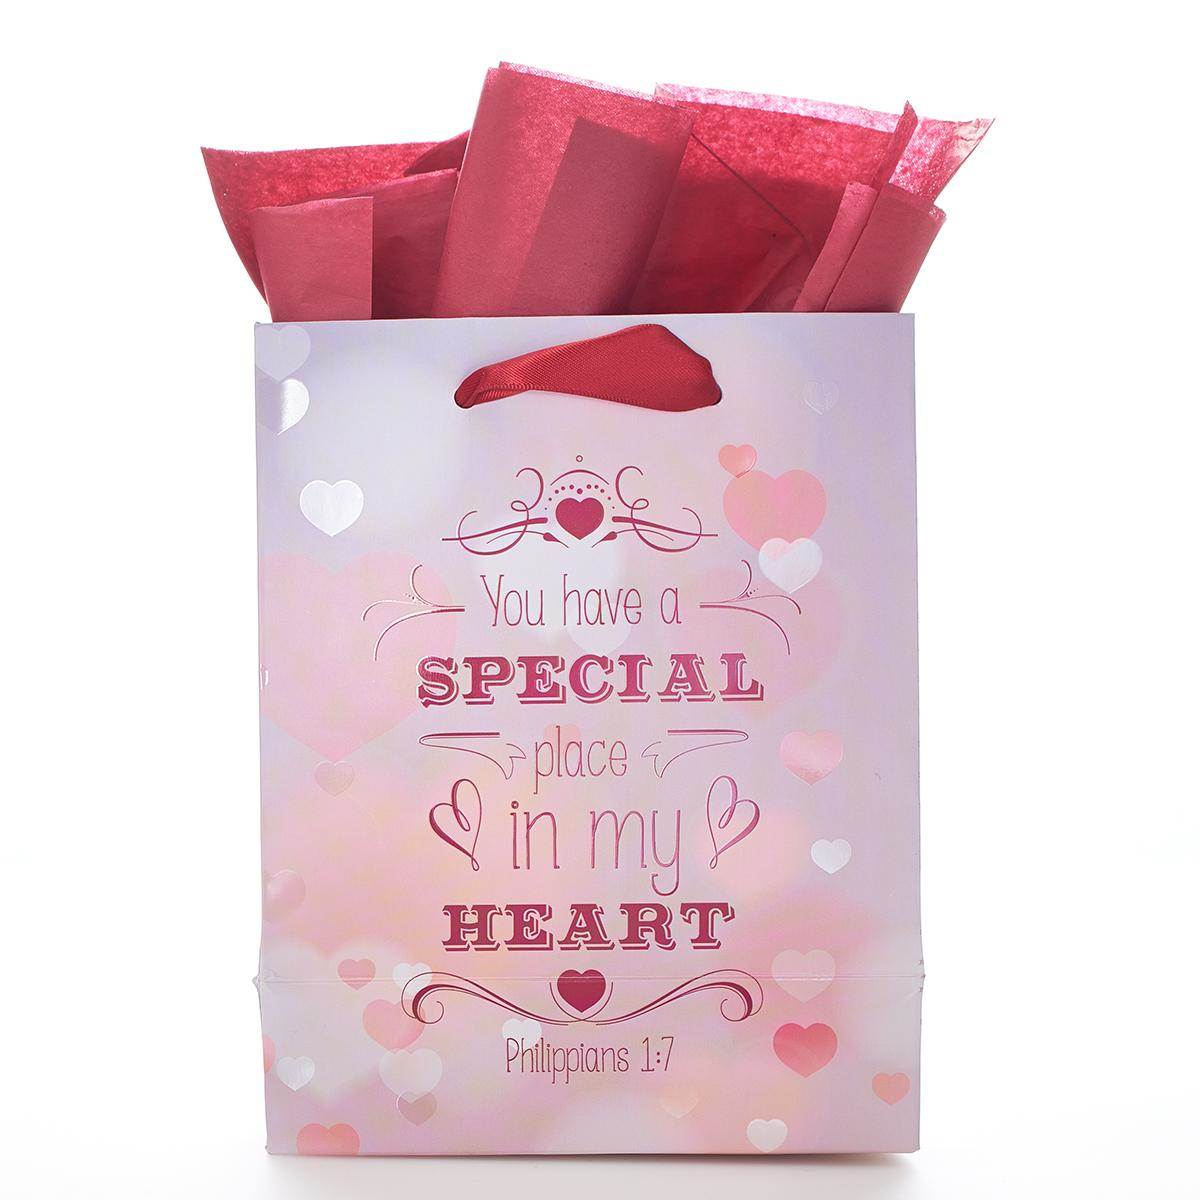 Place in My Heart Small Gift Bag GBA128, gift bag, small bag, special occasion bag, stationary, valentines day, love